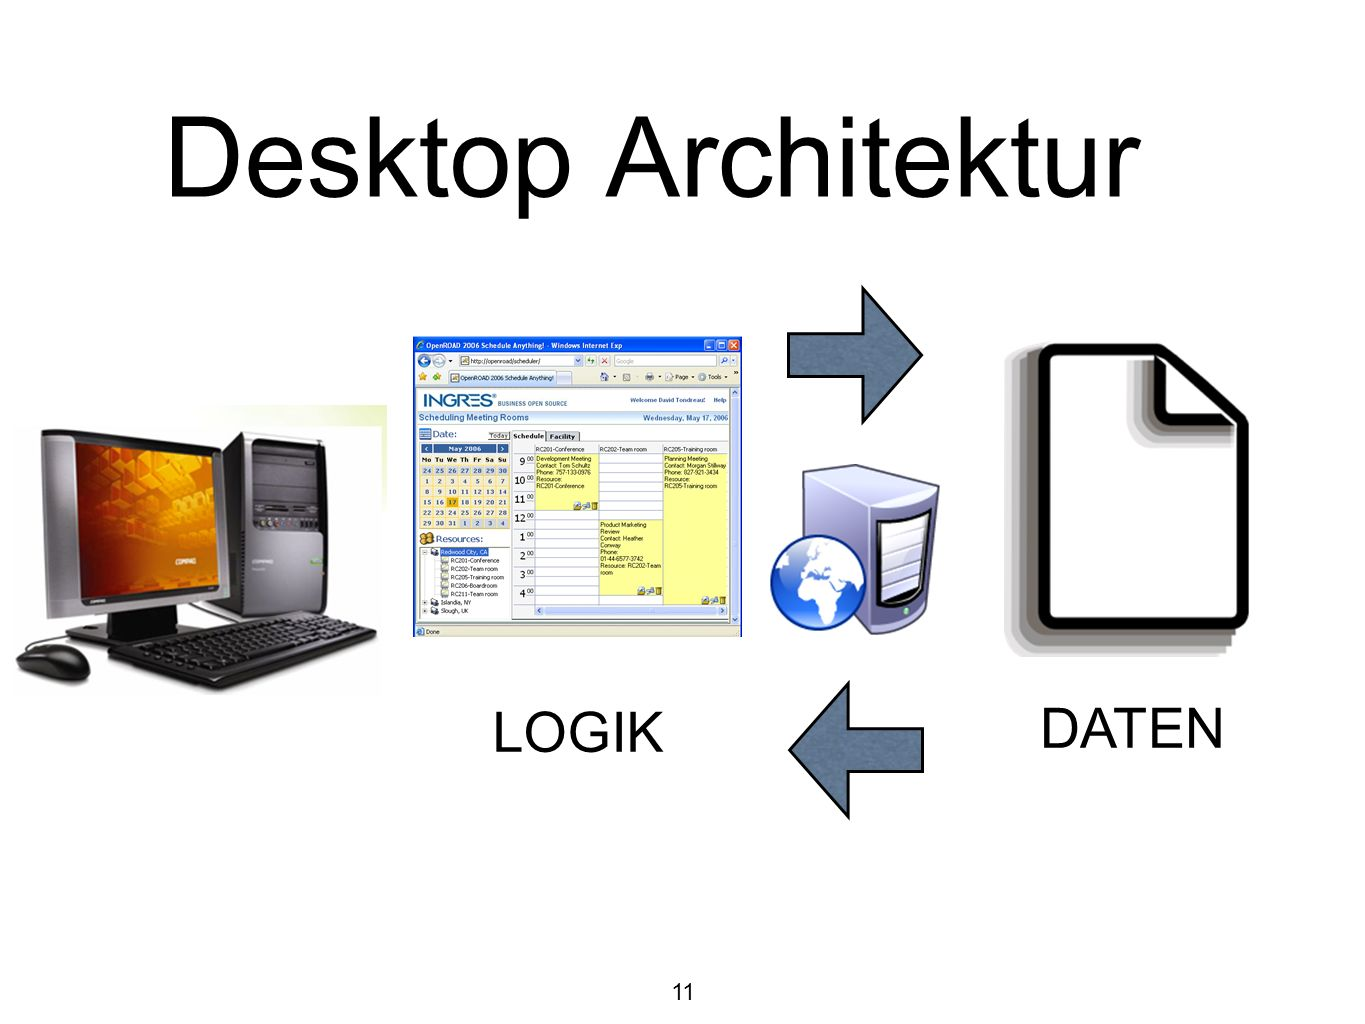 Desktop Architektur LOGIK DATEN